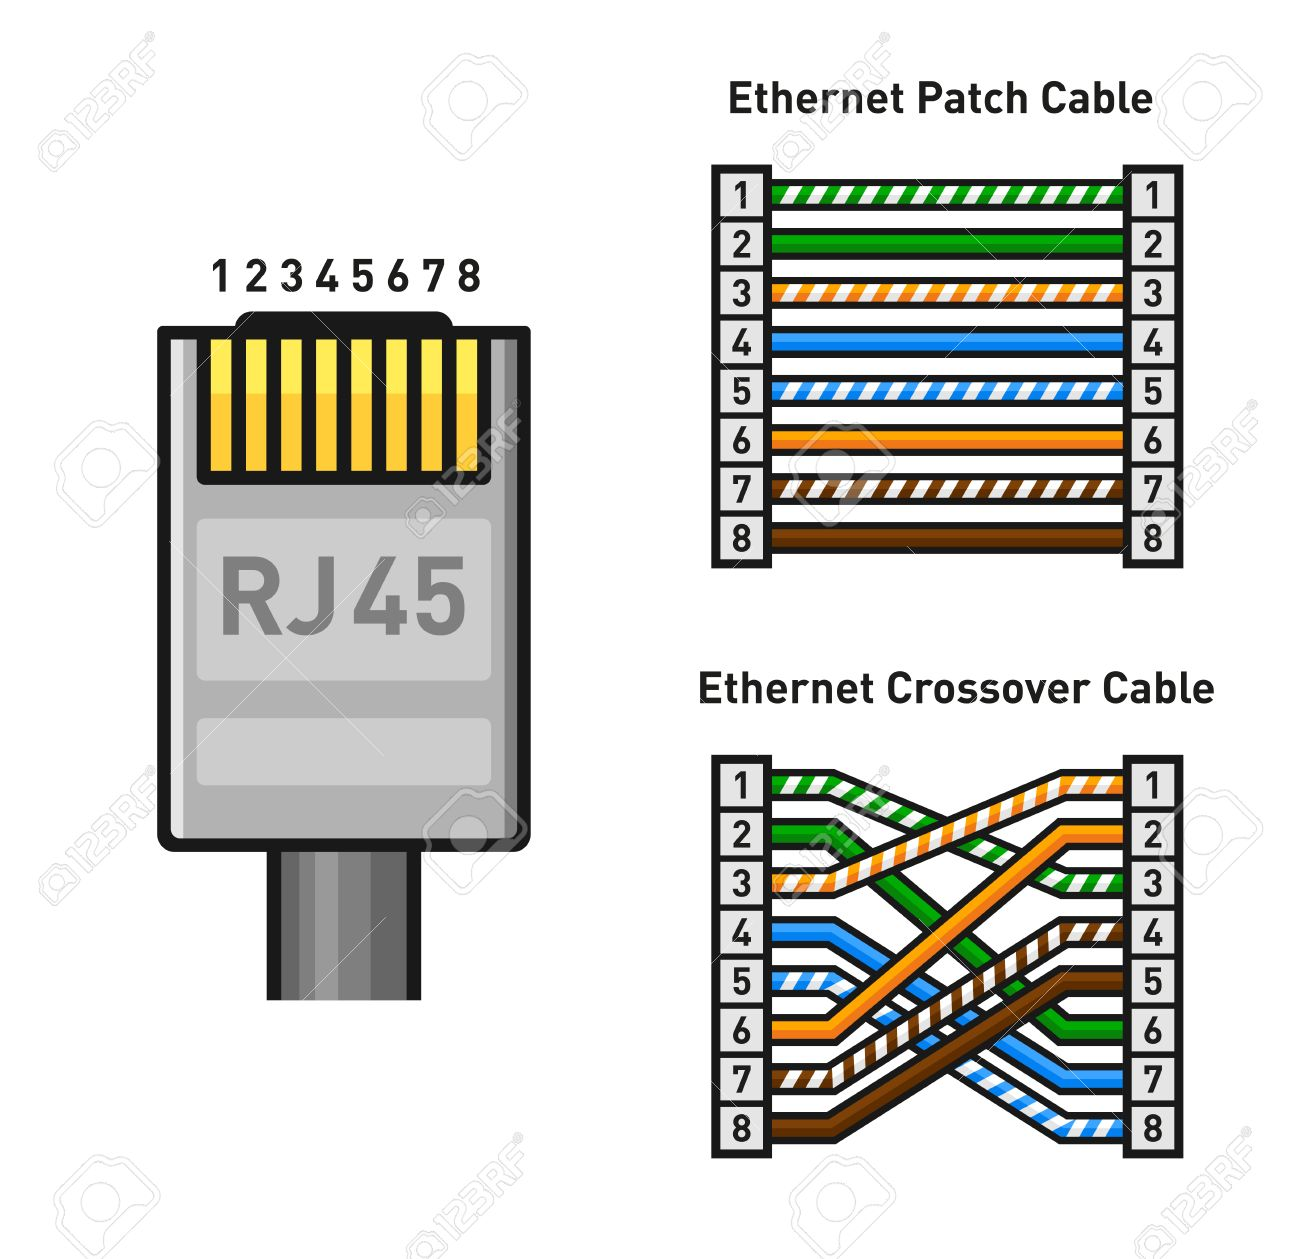 Cable color code rj45 color code rj45 pinout rj45 ethernet cable - Ethernet Connector Pinout Color Code Straight And Crossover Rj45 Connect Vector Illustration Stock Vector